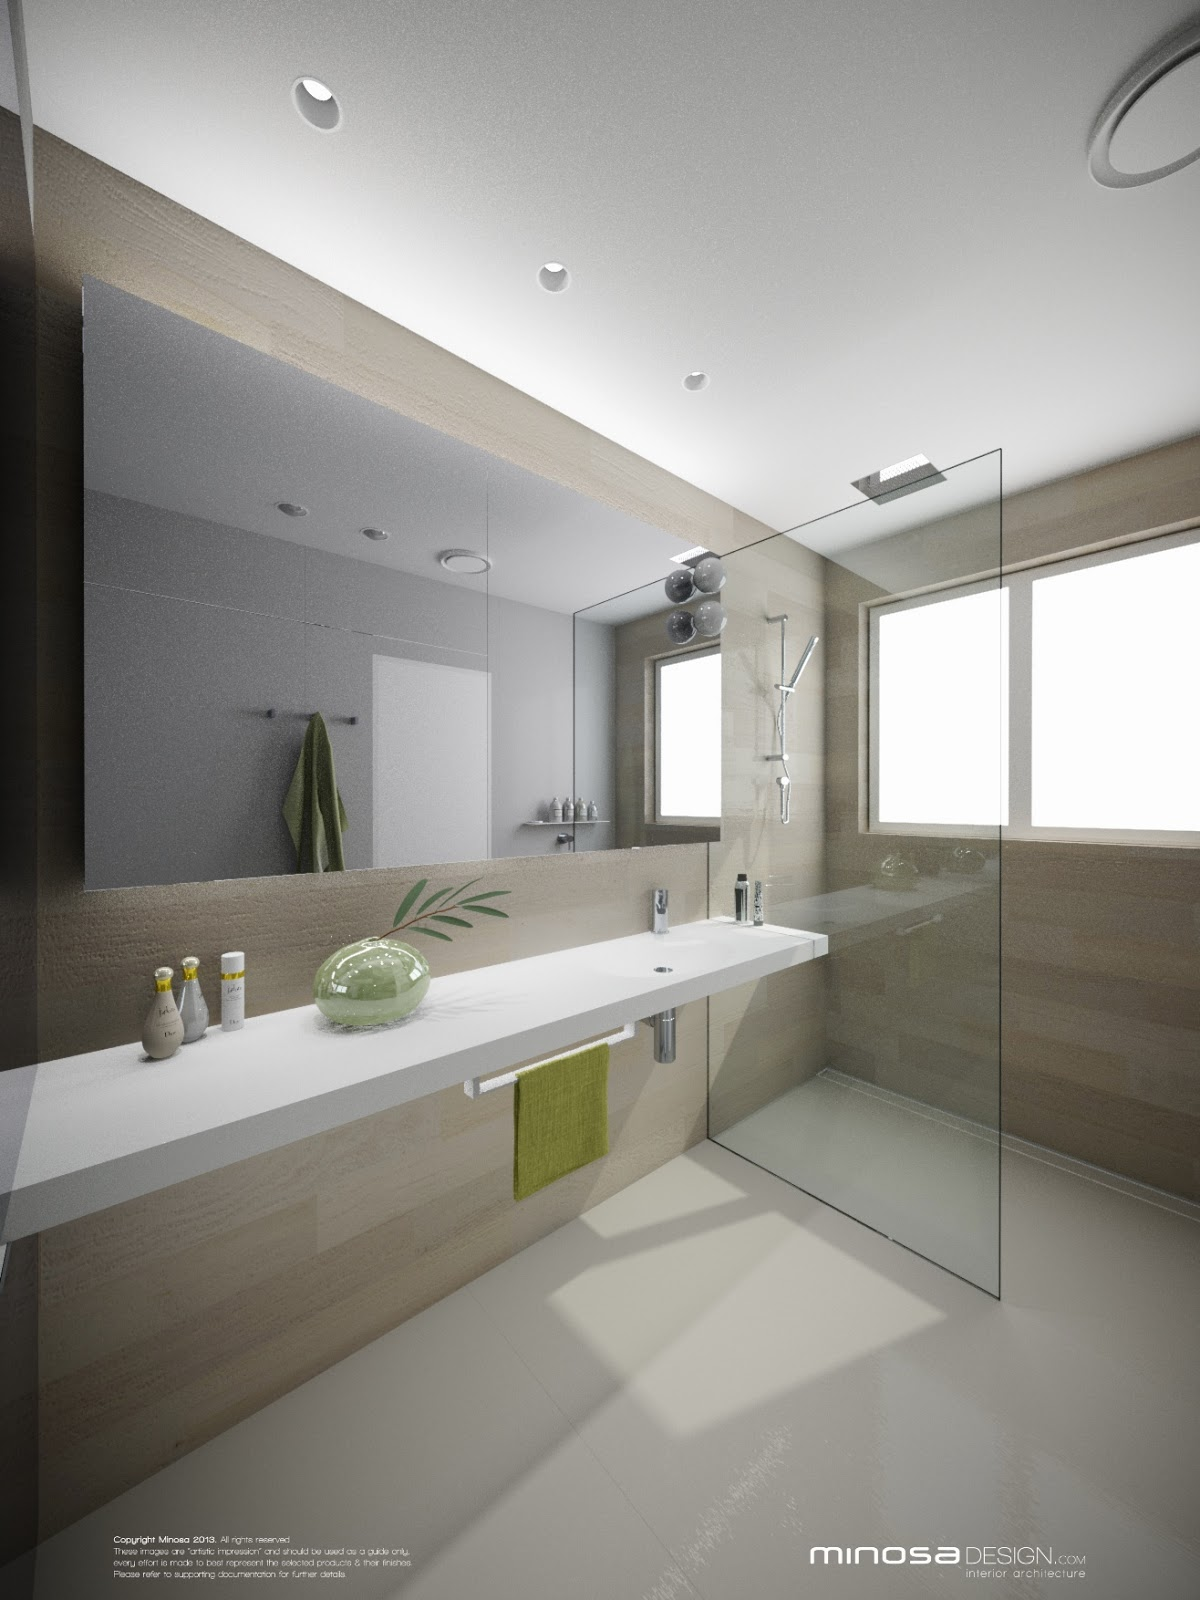 Minosa bringing sexy back the modern bathroom for Contemporary ensuite bathroom design ideas